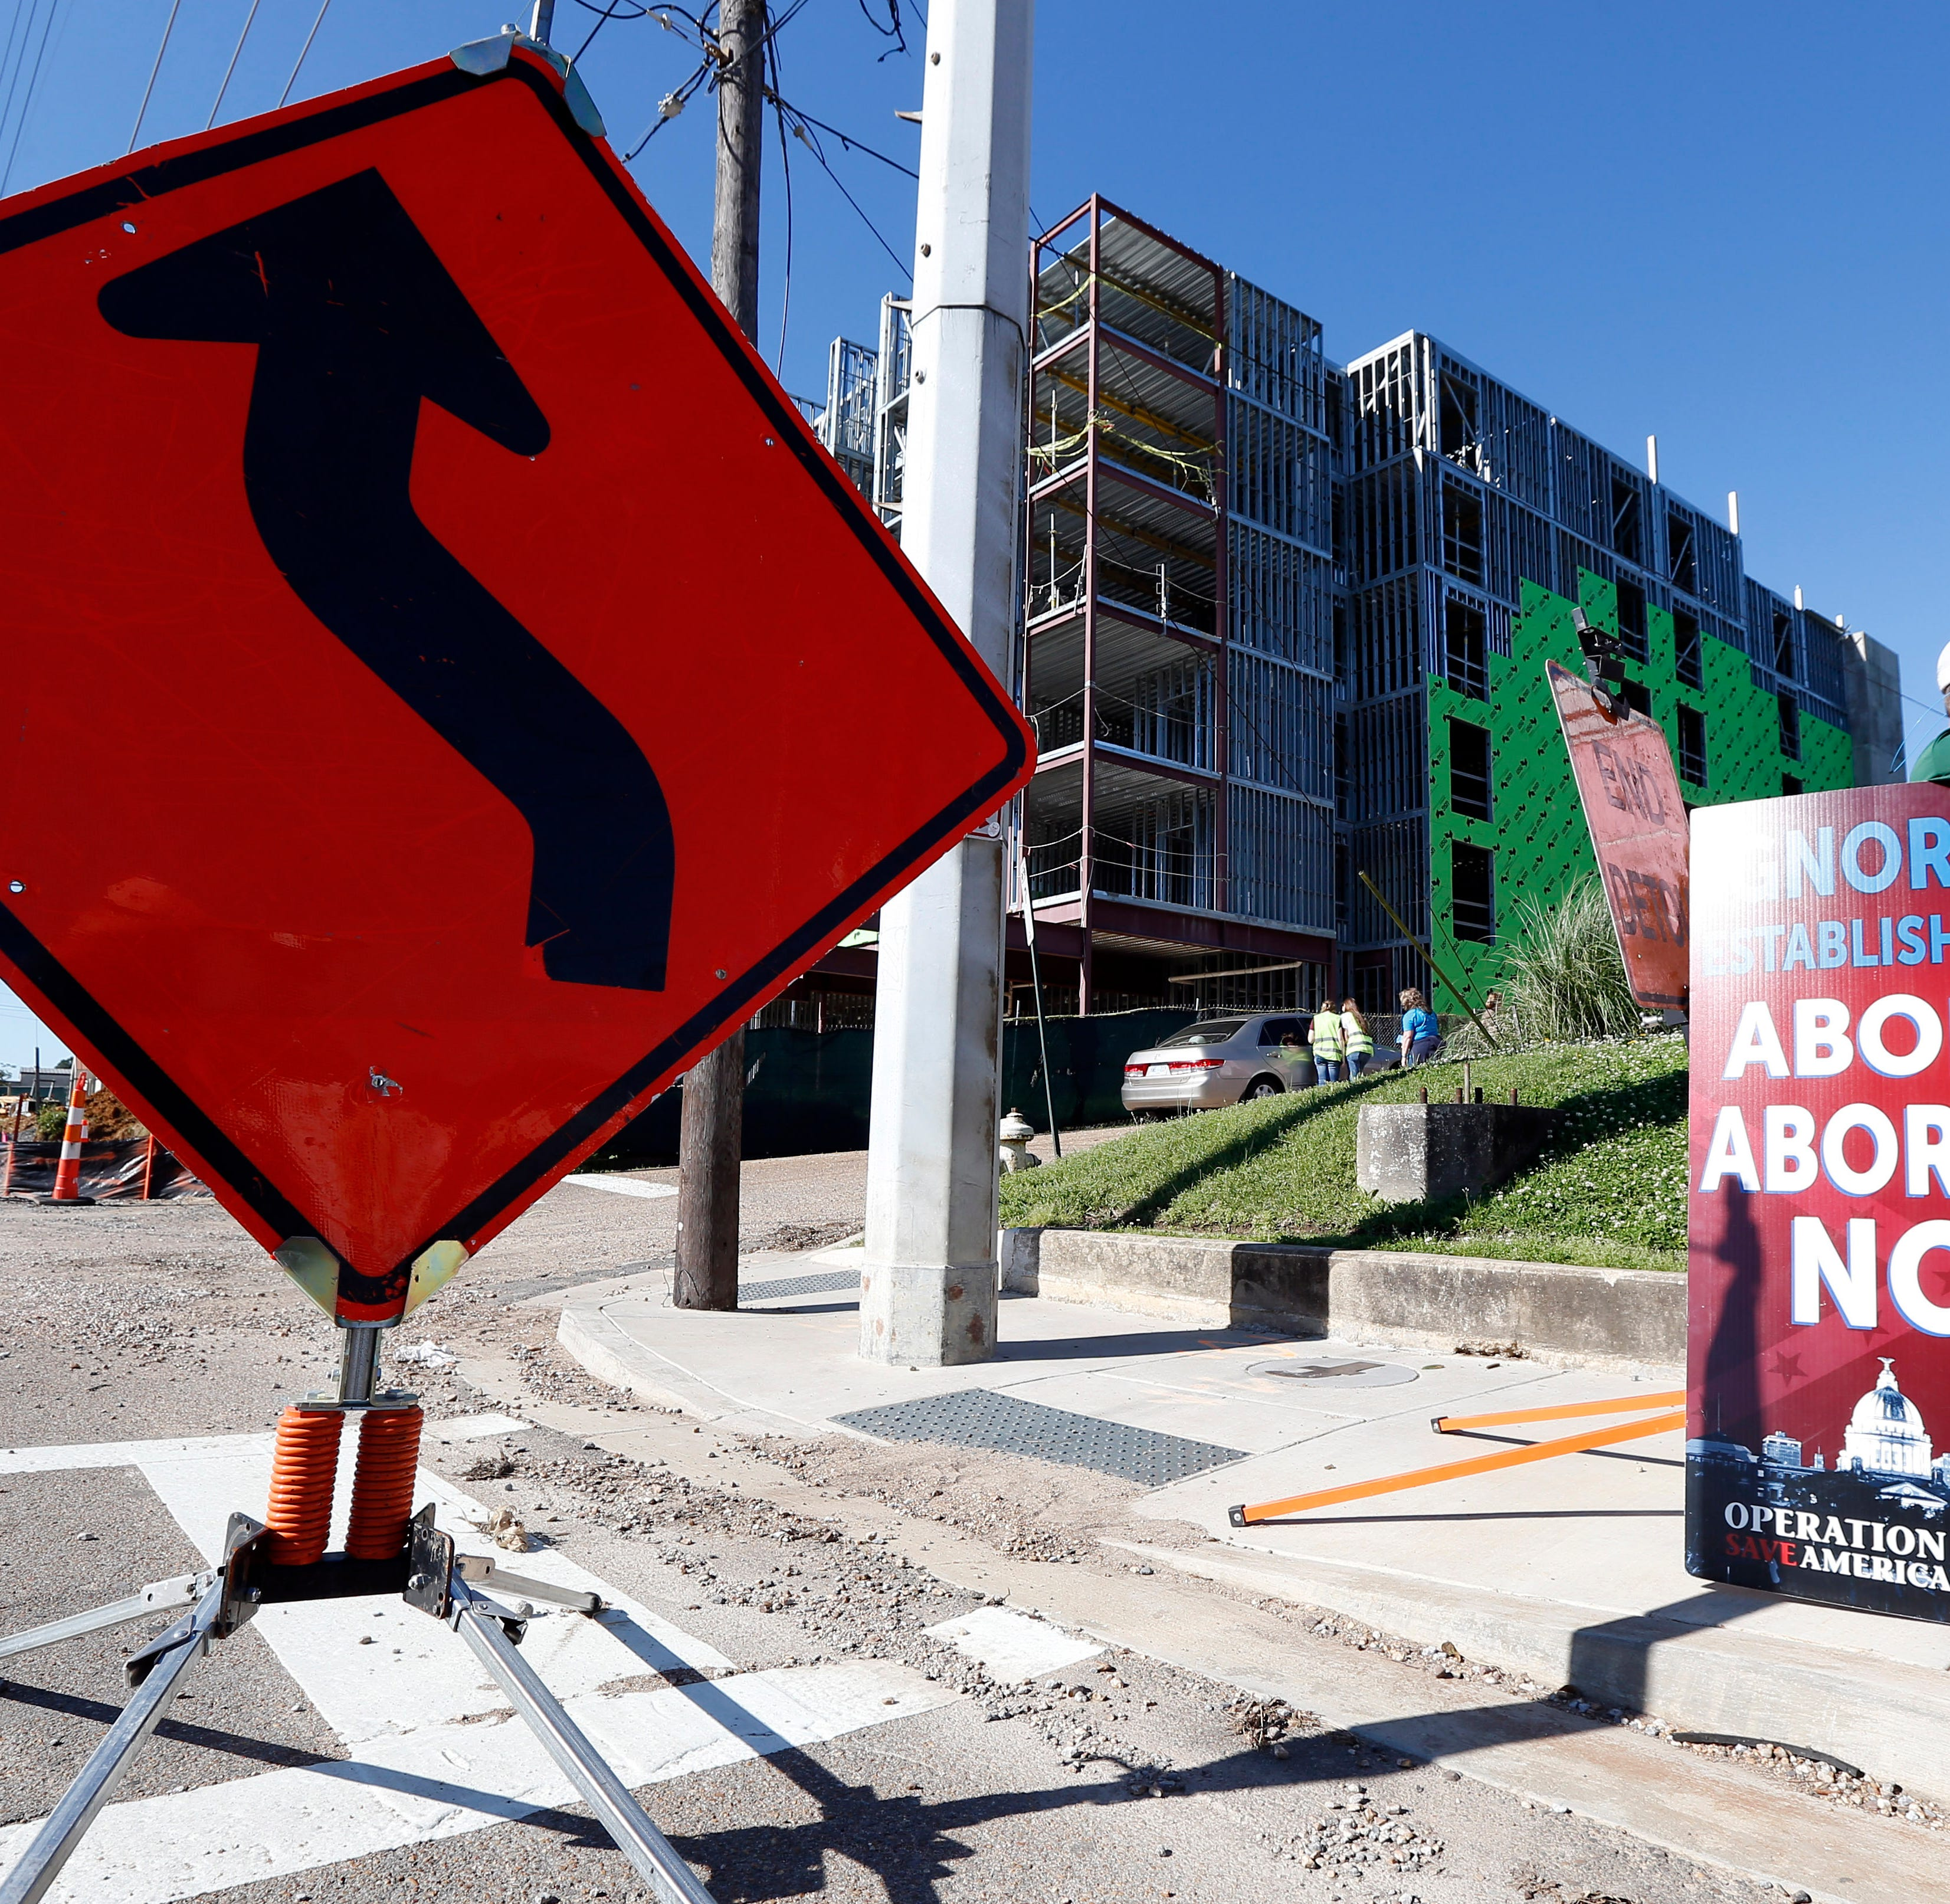 Abortion opponents stand outside the Jackson Women's Health Organization clinic, right, while construction on a hotel, background, continues in Jackson, Miss., Wednesday, April 10, 2019. The clinic is the only medical facility that performs abortions in the state. The state legislature recently passed a law that would ban most abortions after a fetal heartbeat is detected, meaning as early as six weeks.